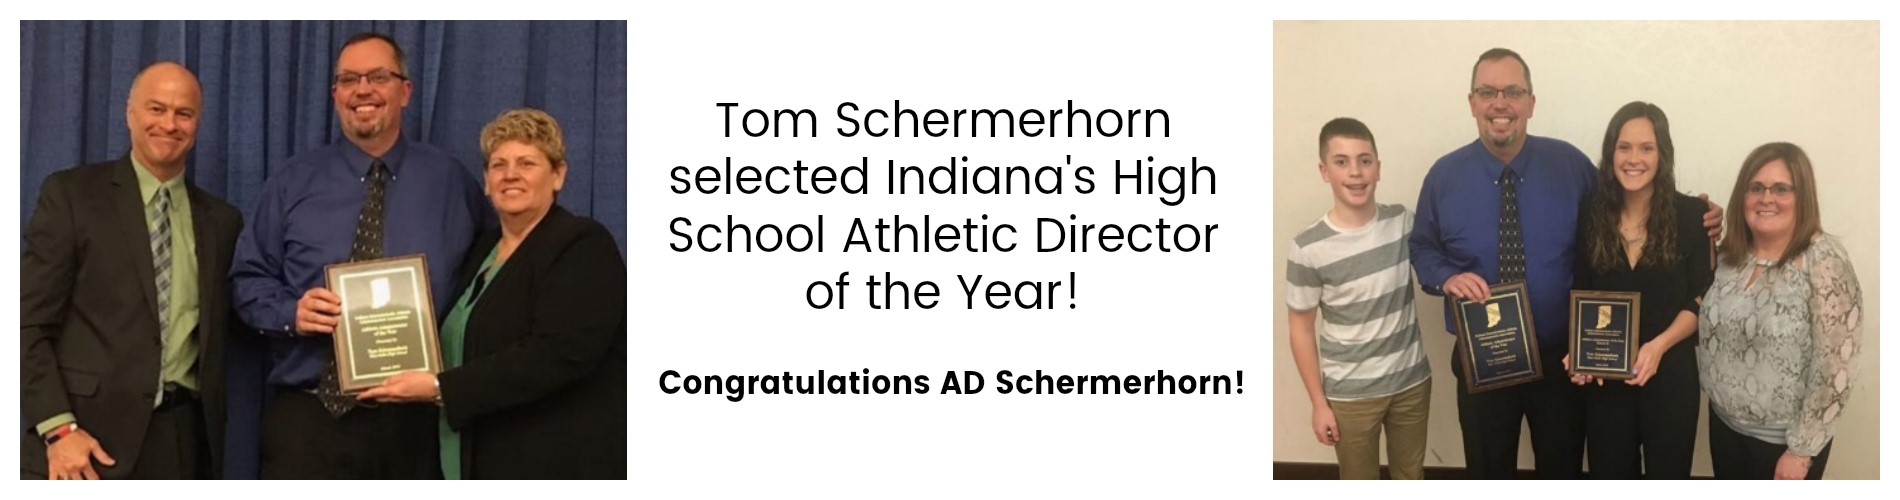 Schermerhorn named Indiana AD of the Year.